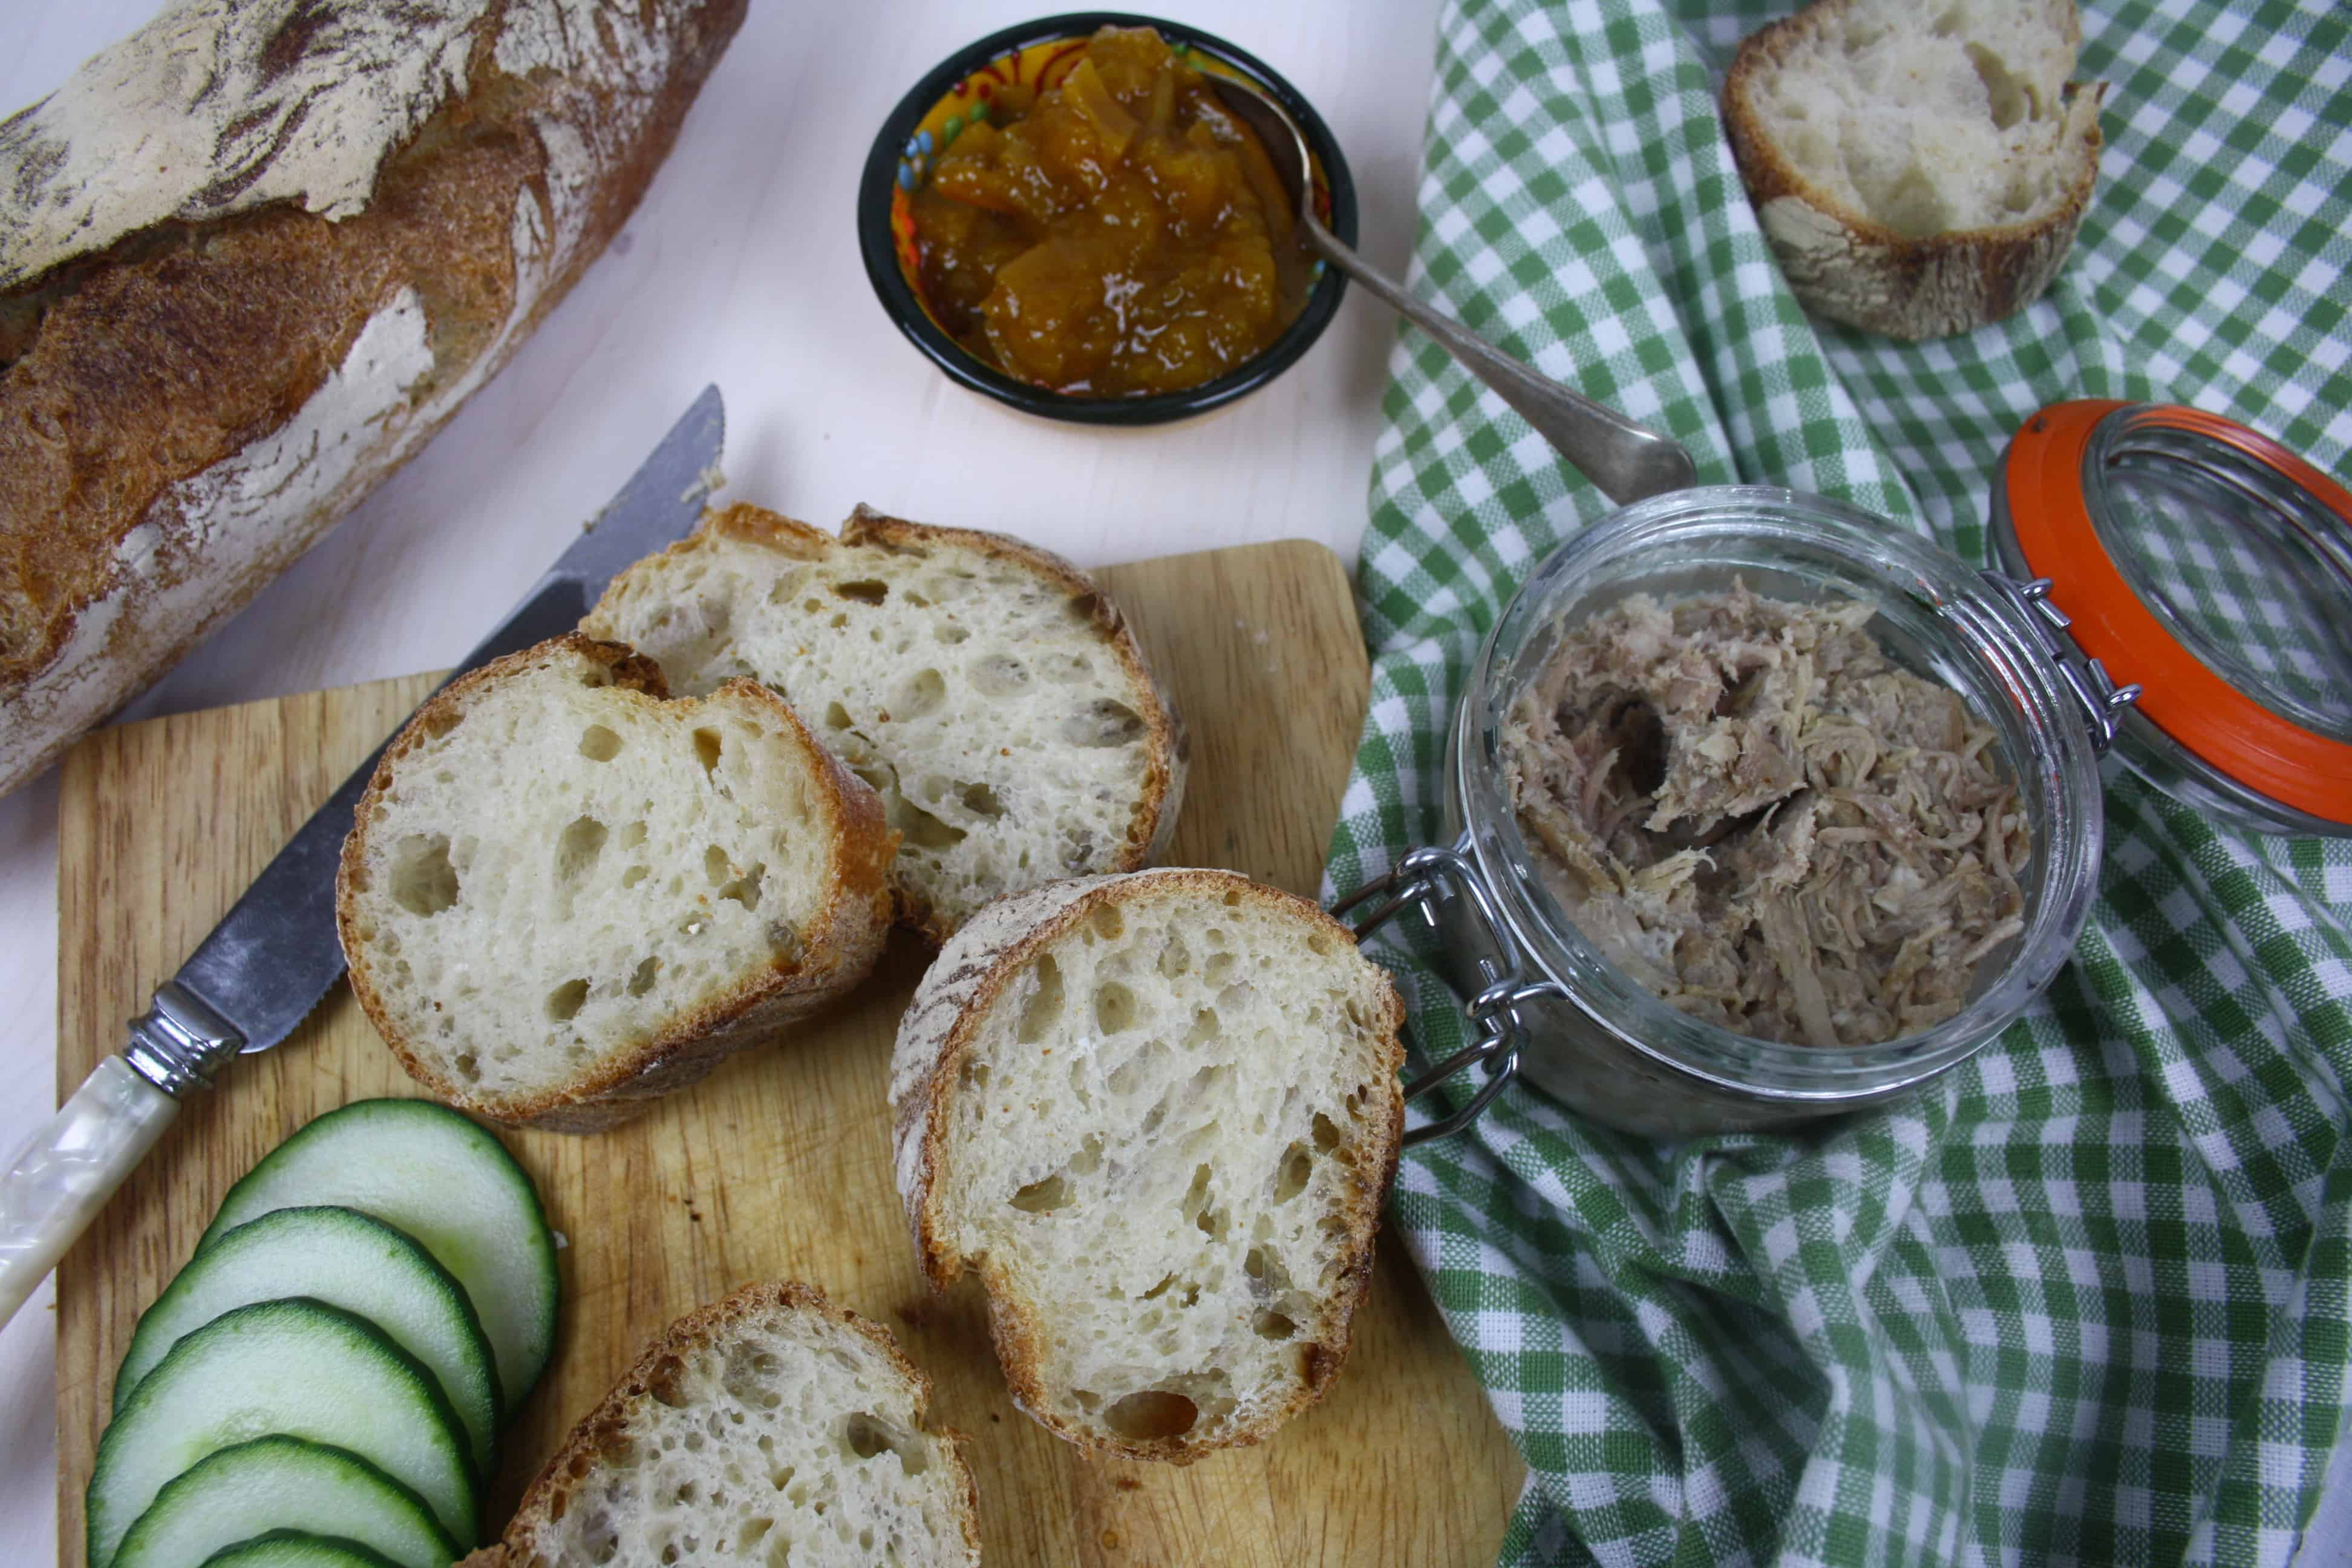 pot of cooked pork with bread slices and chutney.